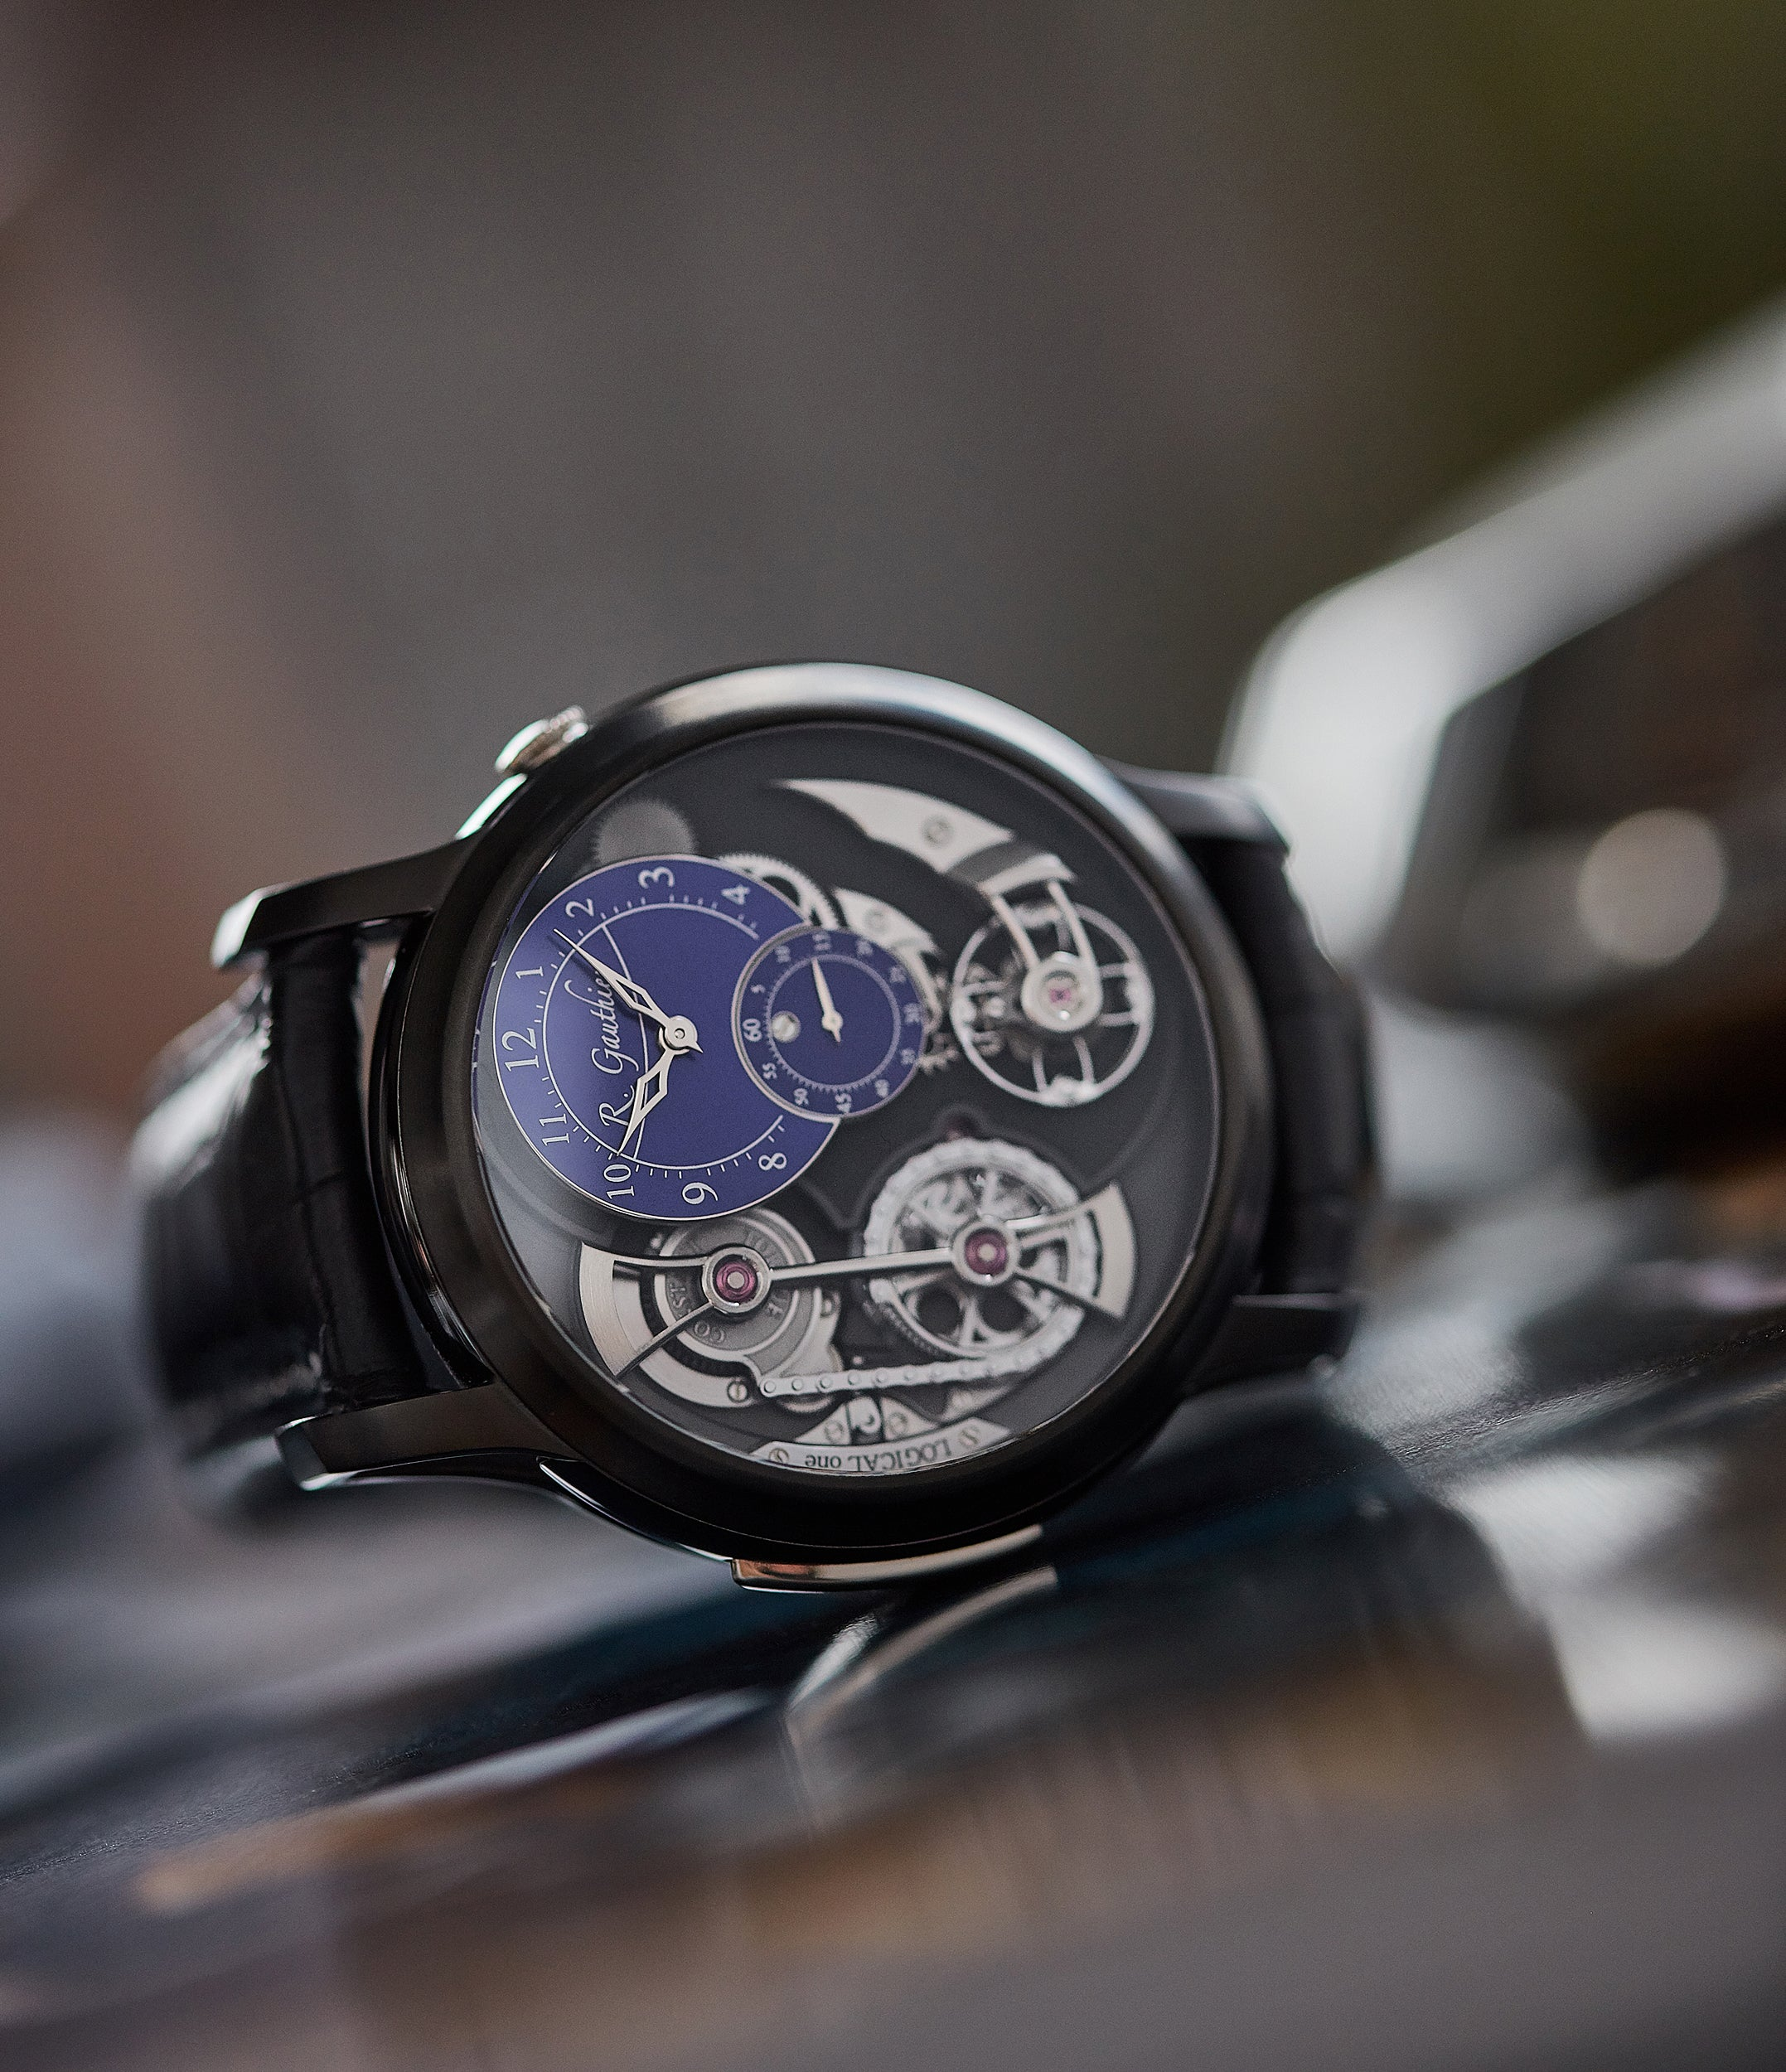 Limited Edition 1 of 5 Romain Gauthier Logical One BTG titanium watch blue enamel dial for sale online at A Collected Man London UK specialist of independent watchmakers